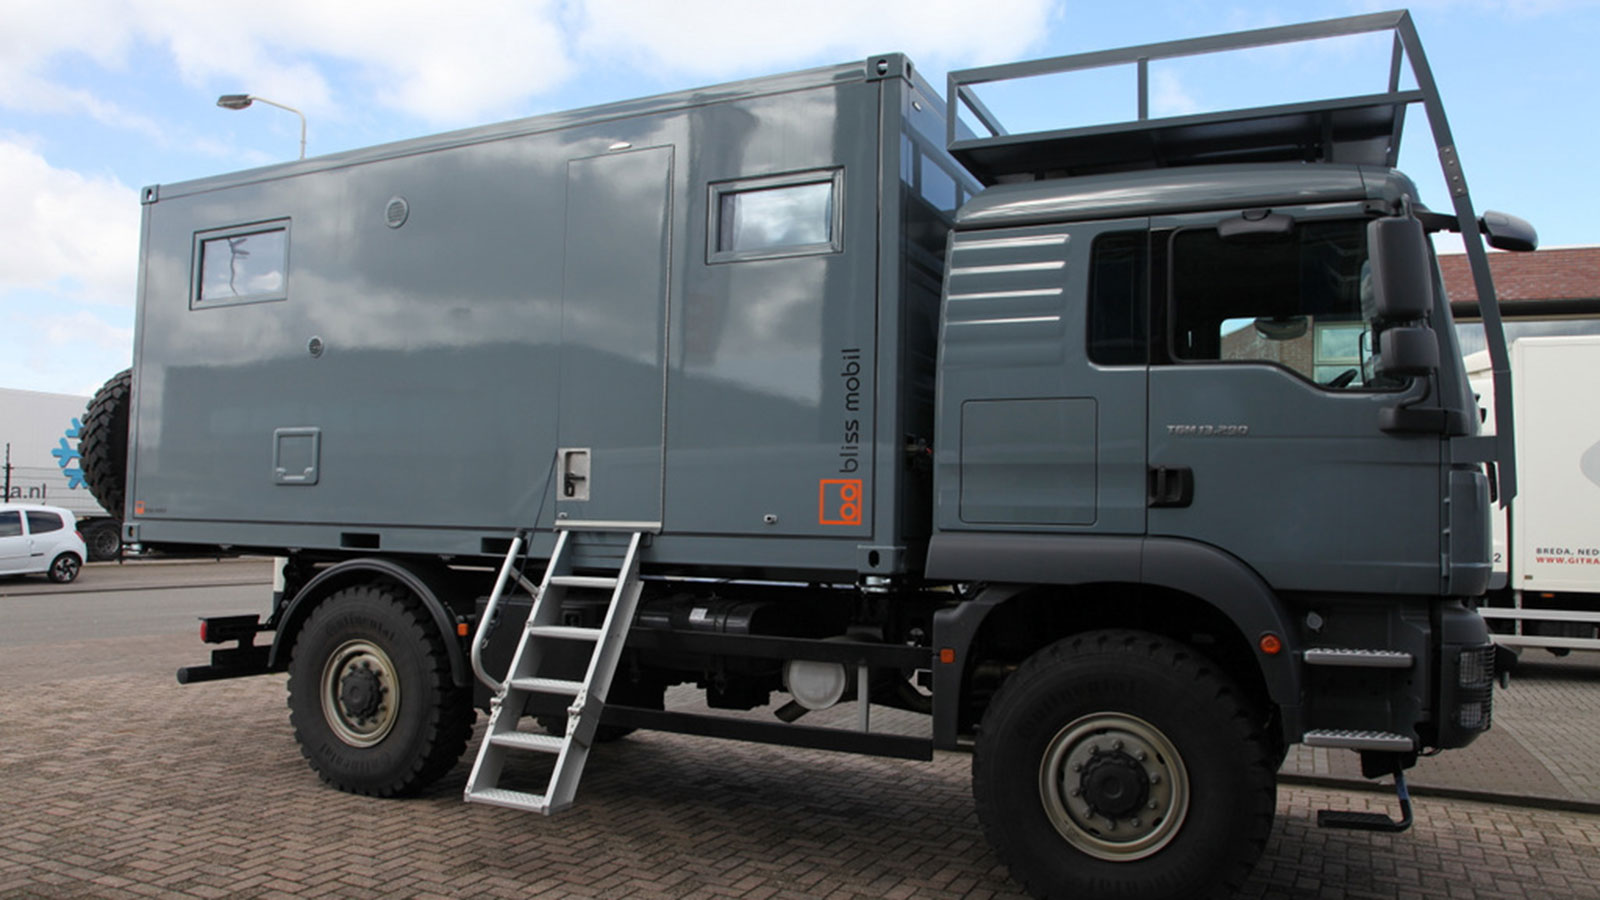 bliss-mobil-expedition-vehicle-1